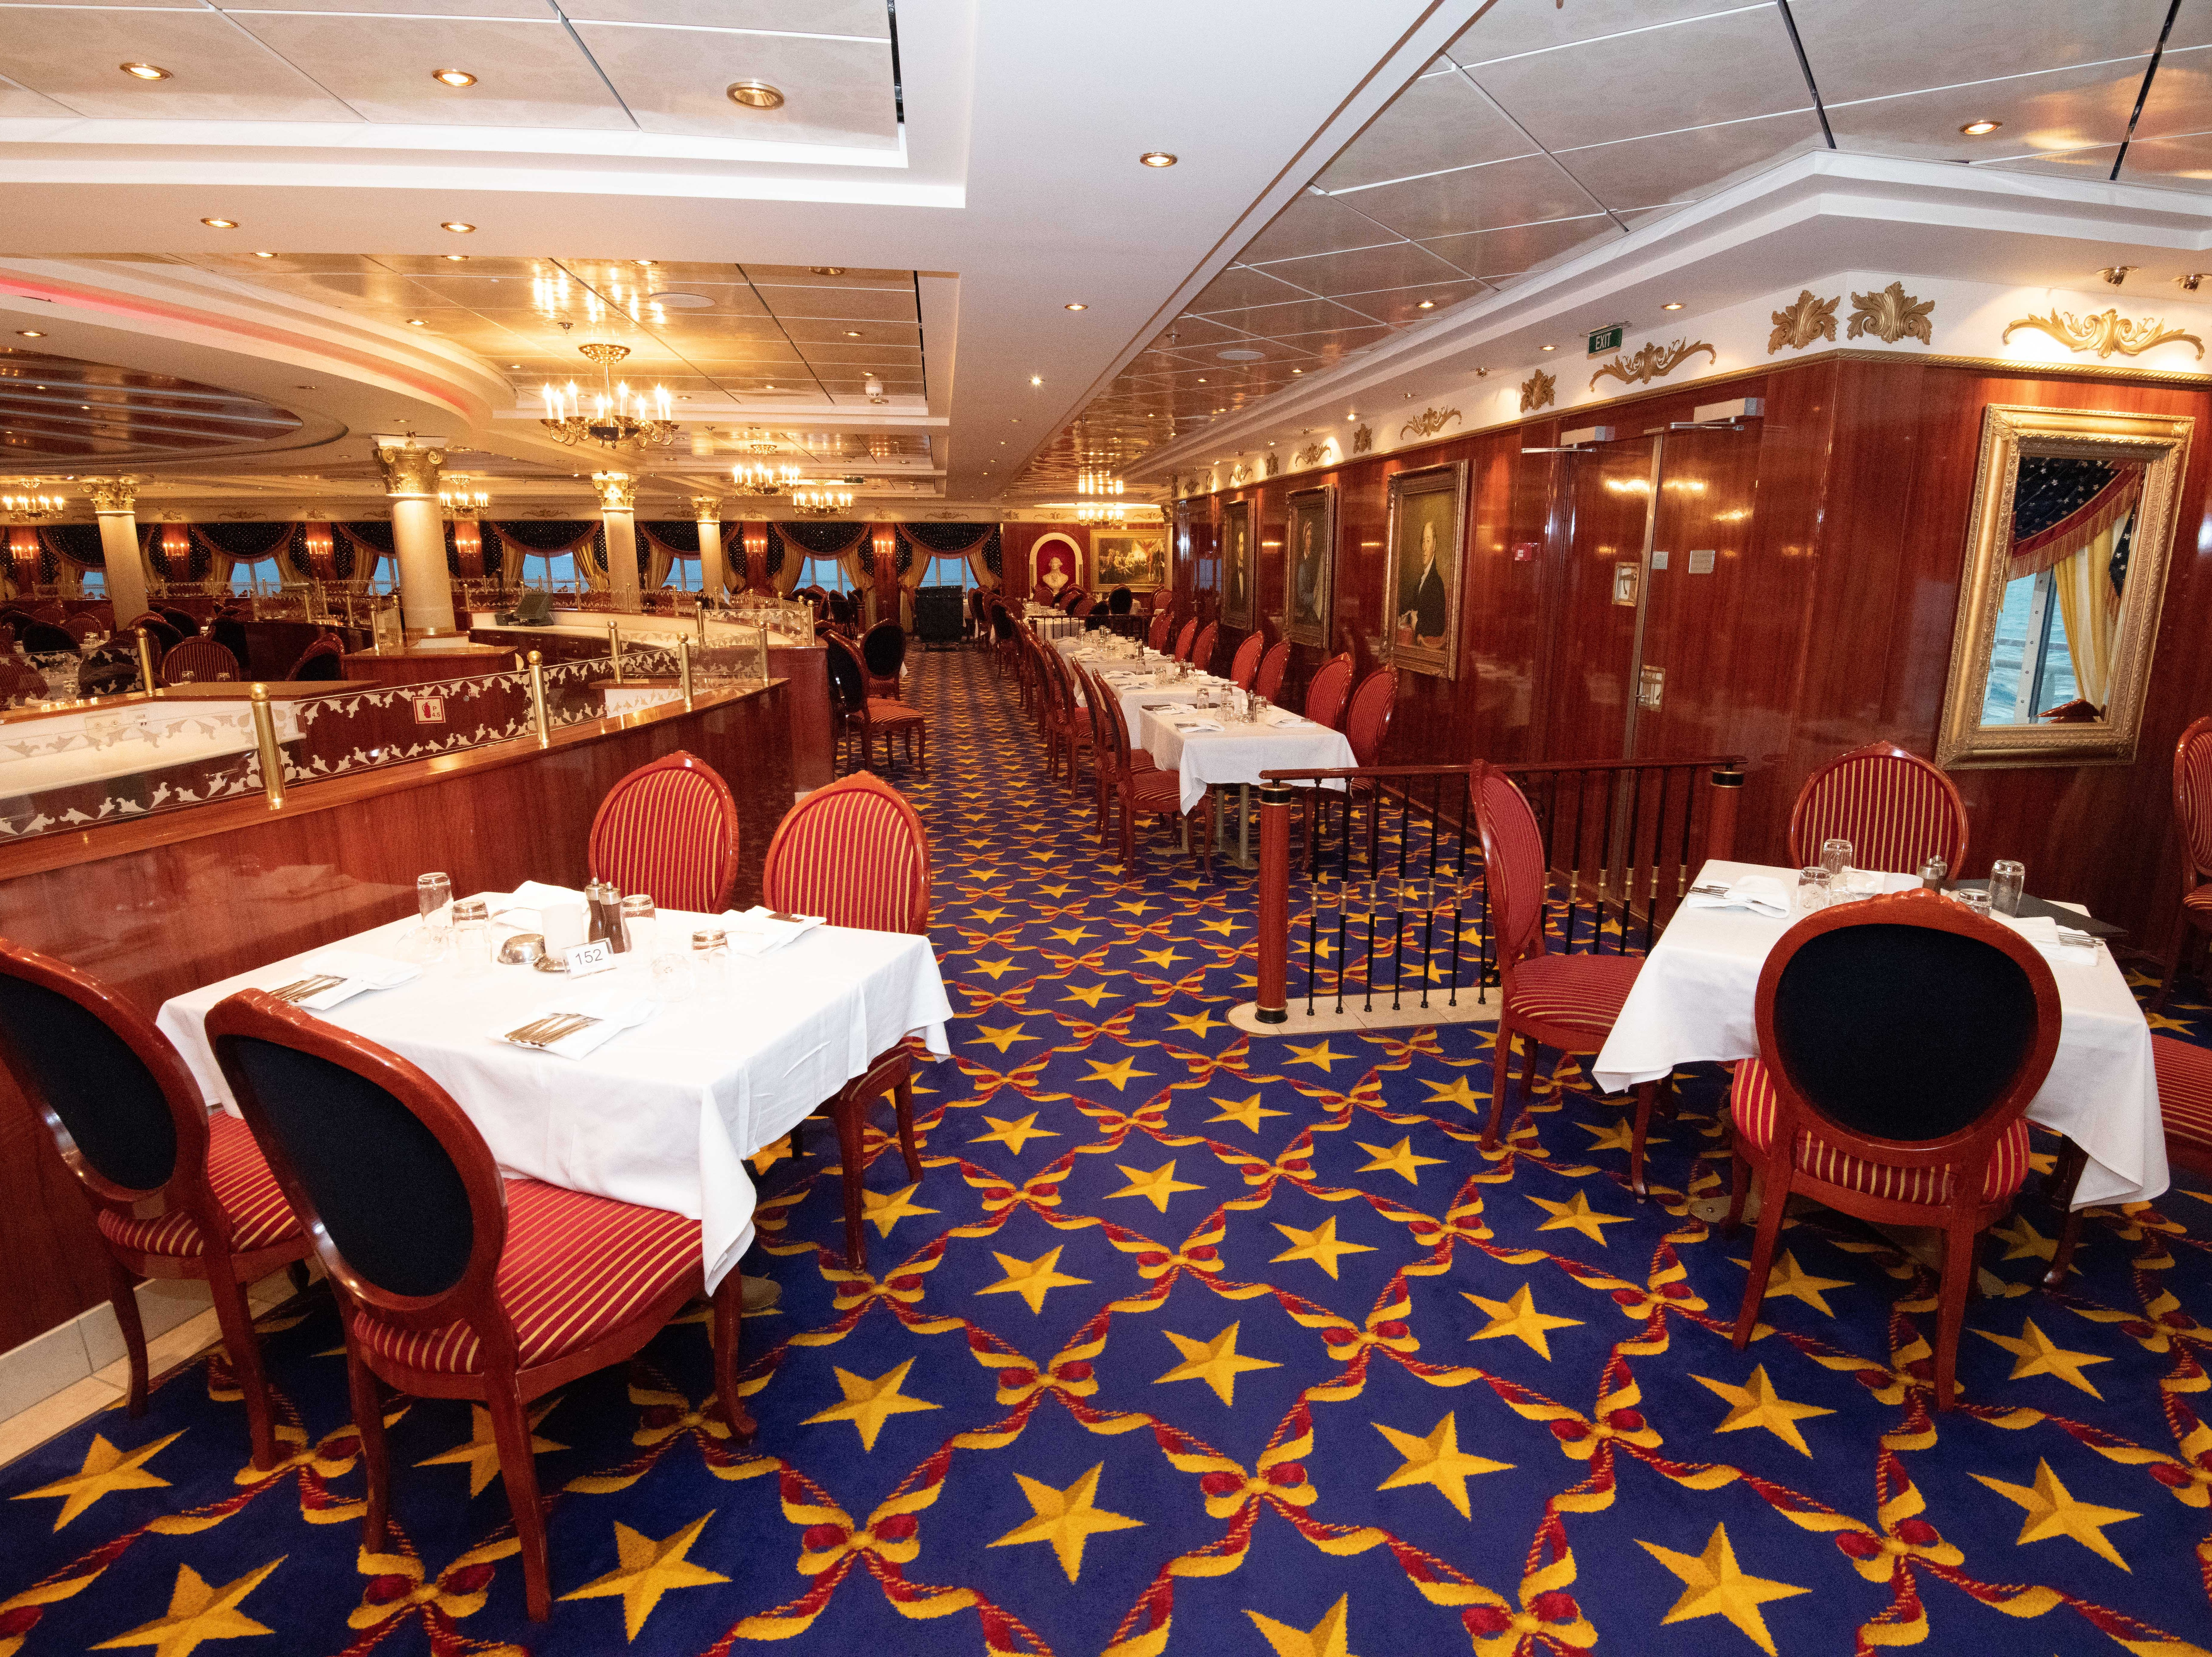 The Liberty Main Dining Room has a patriotic red, white and blue-dominated  decor and serves up classic American cuisine including turkey, roast beef, potatoes and hot apple pie.